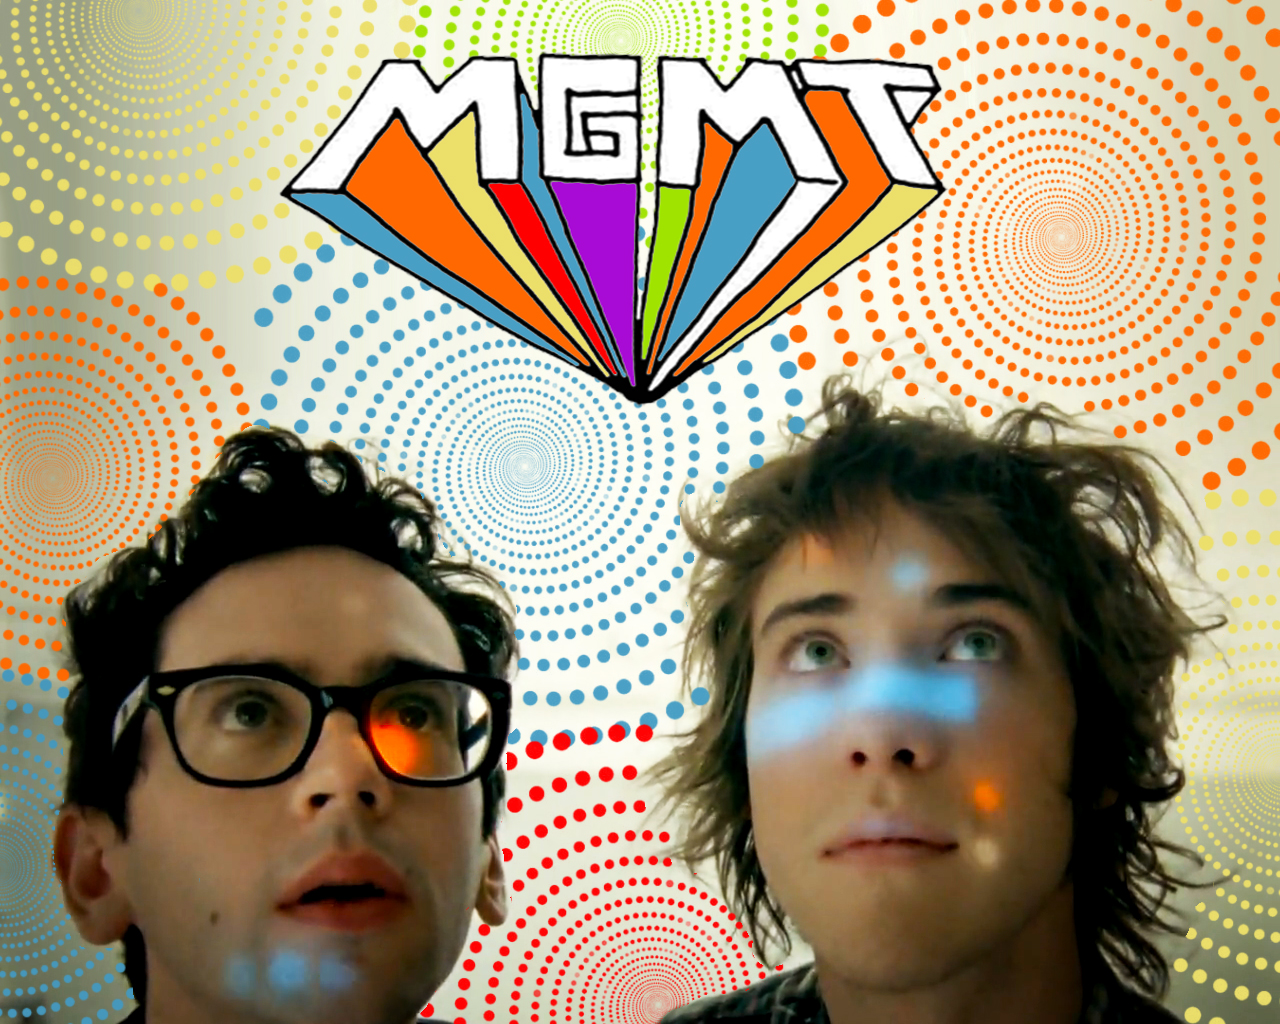 Is MGMT Coming Back in 2016 1280x1024